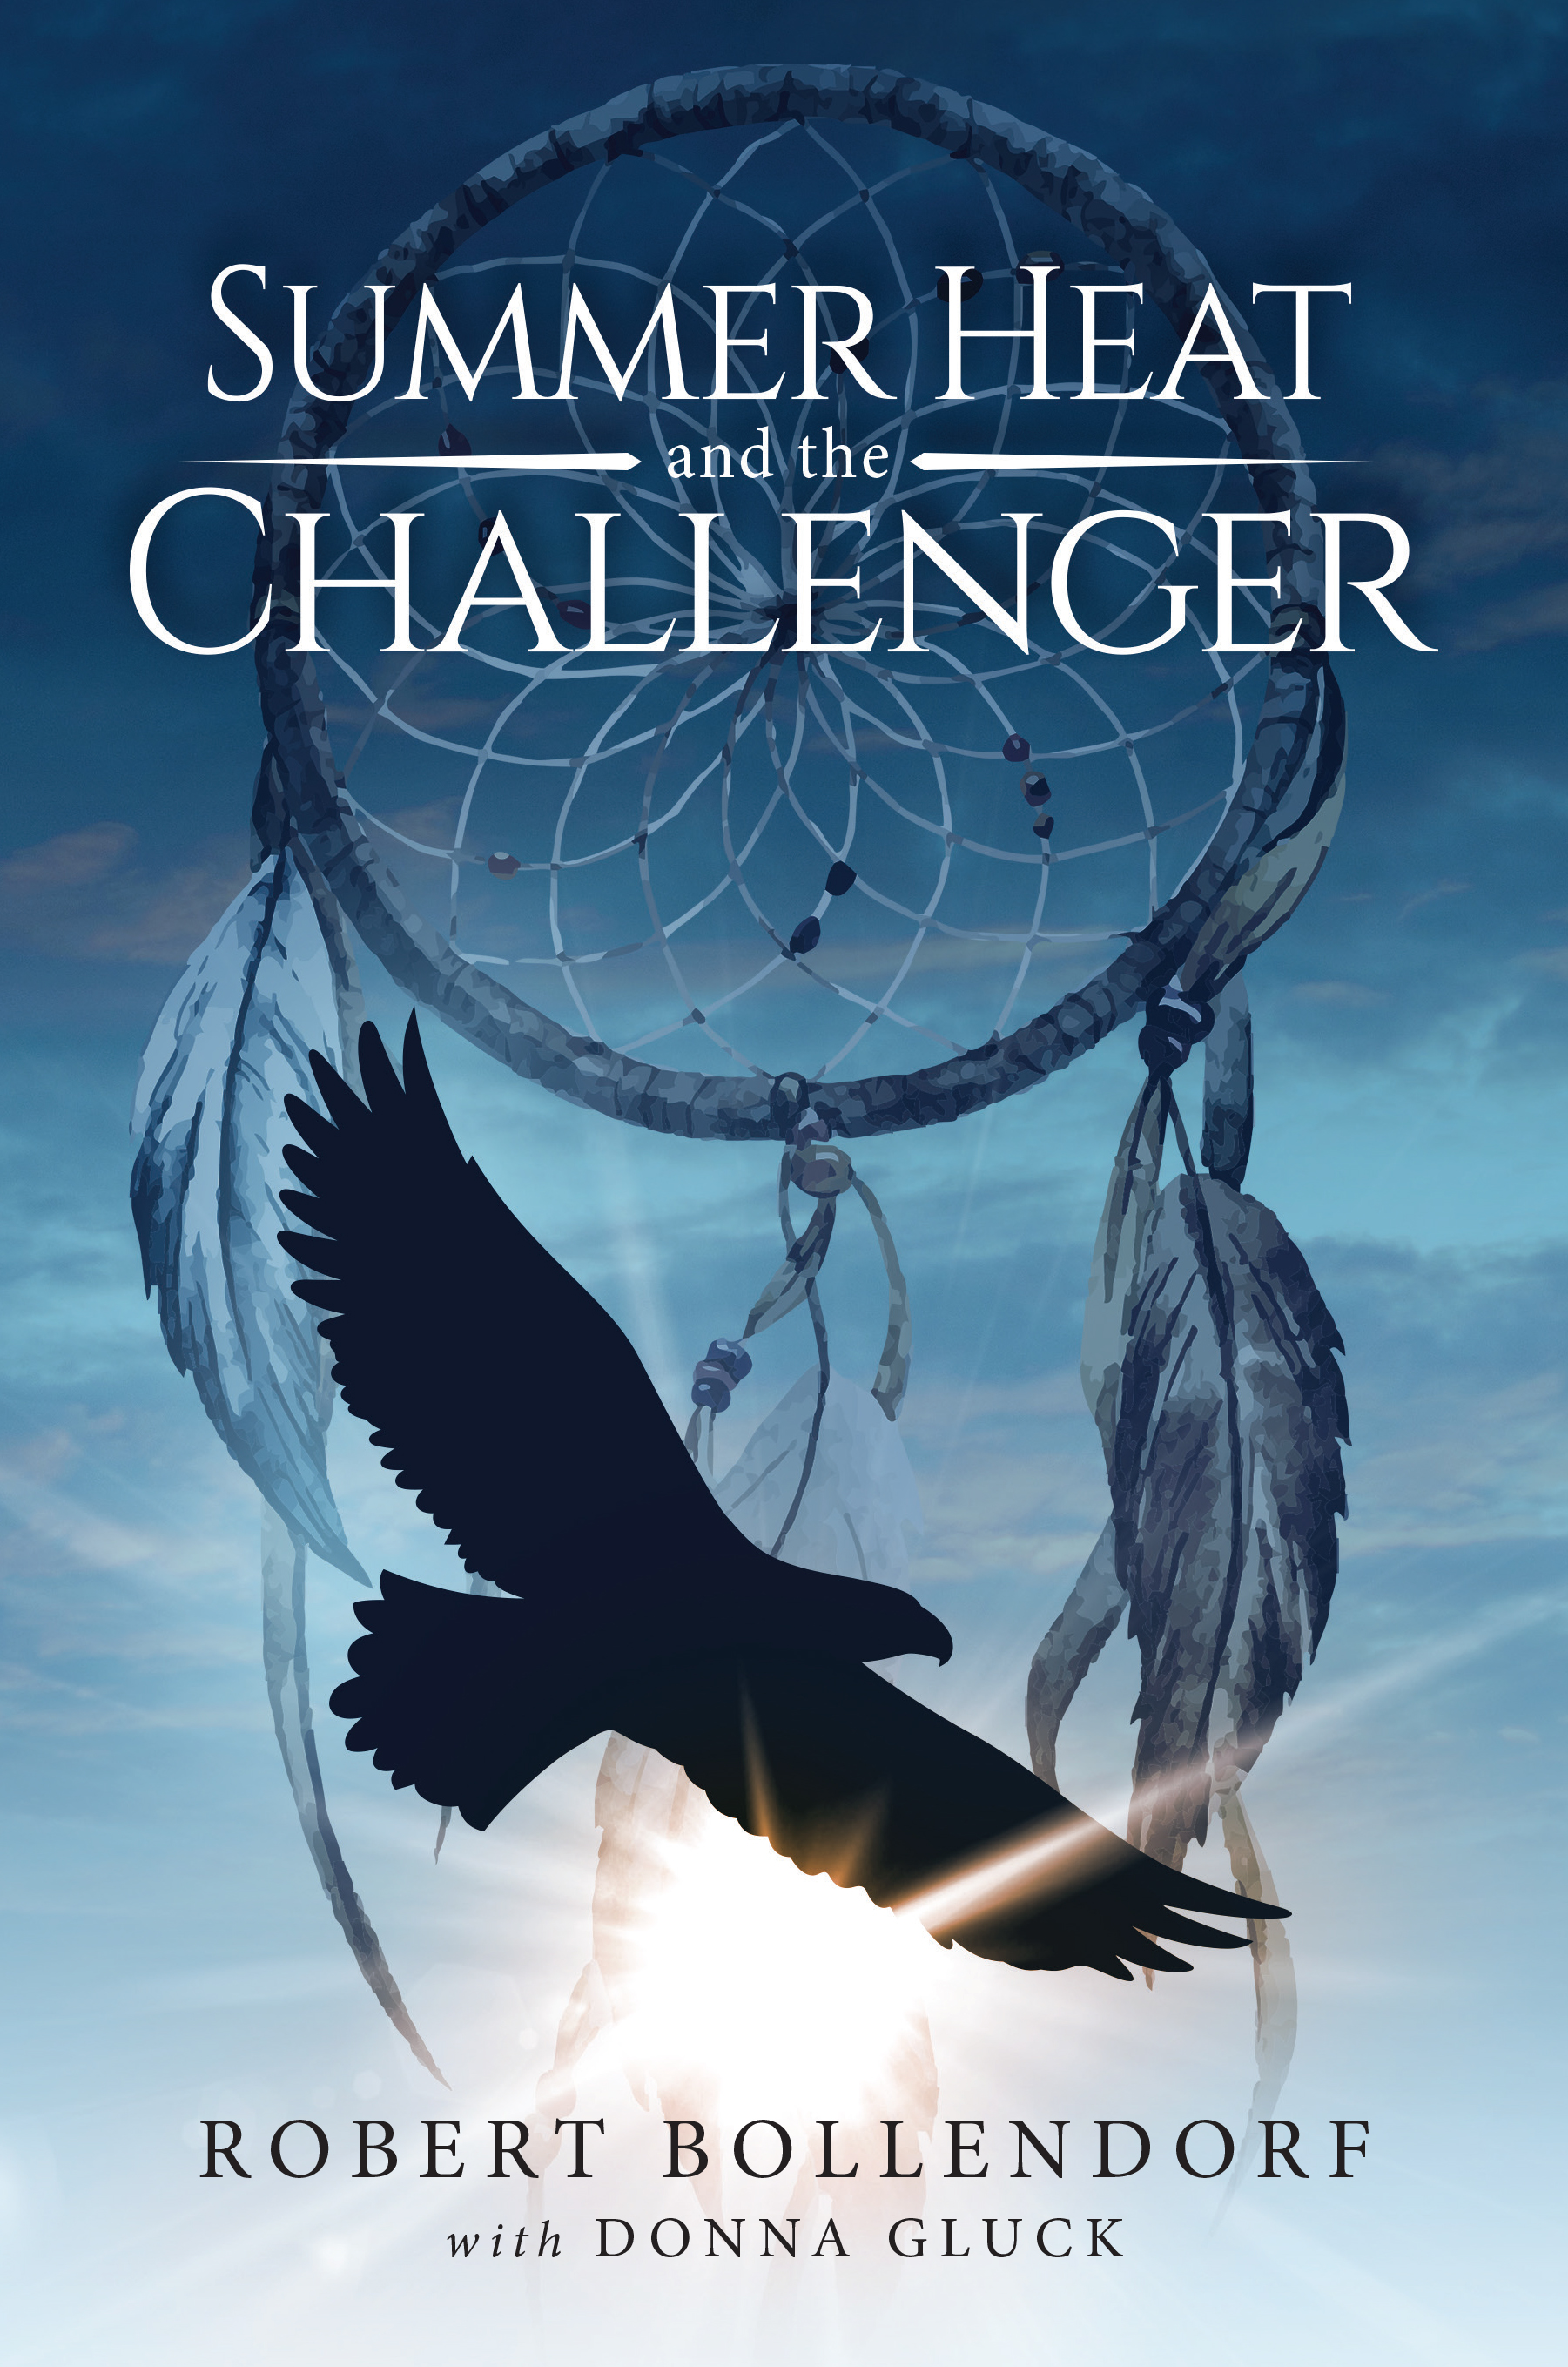 Summer Heat and the Challenger: A Light-filled Awakening for Every Reader.